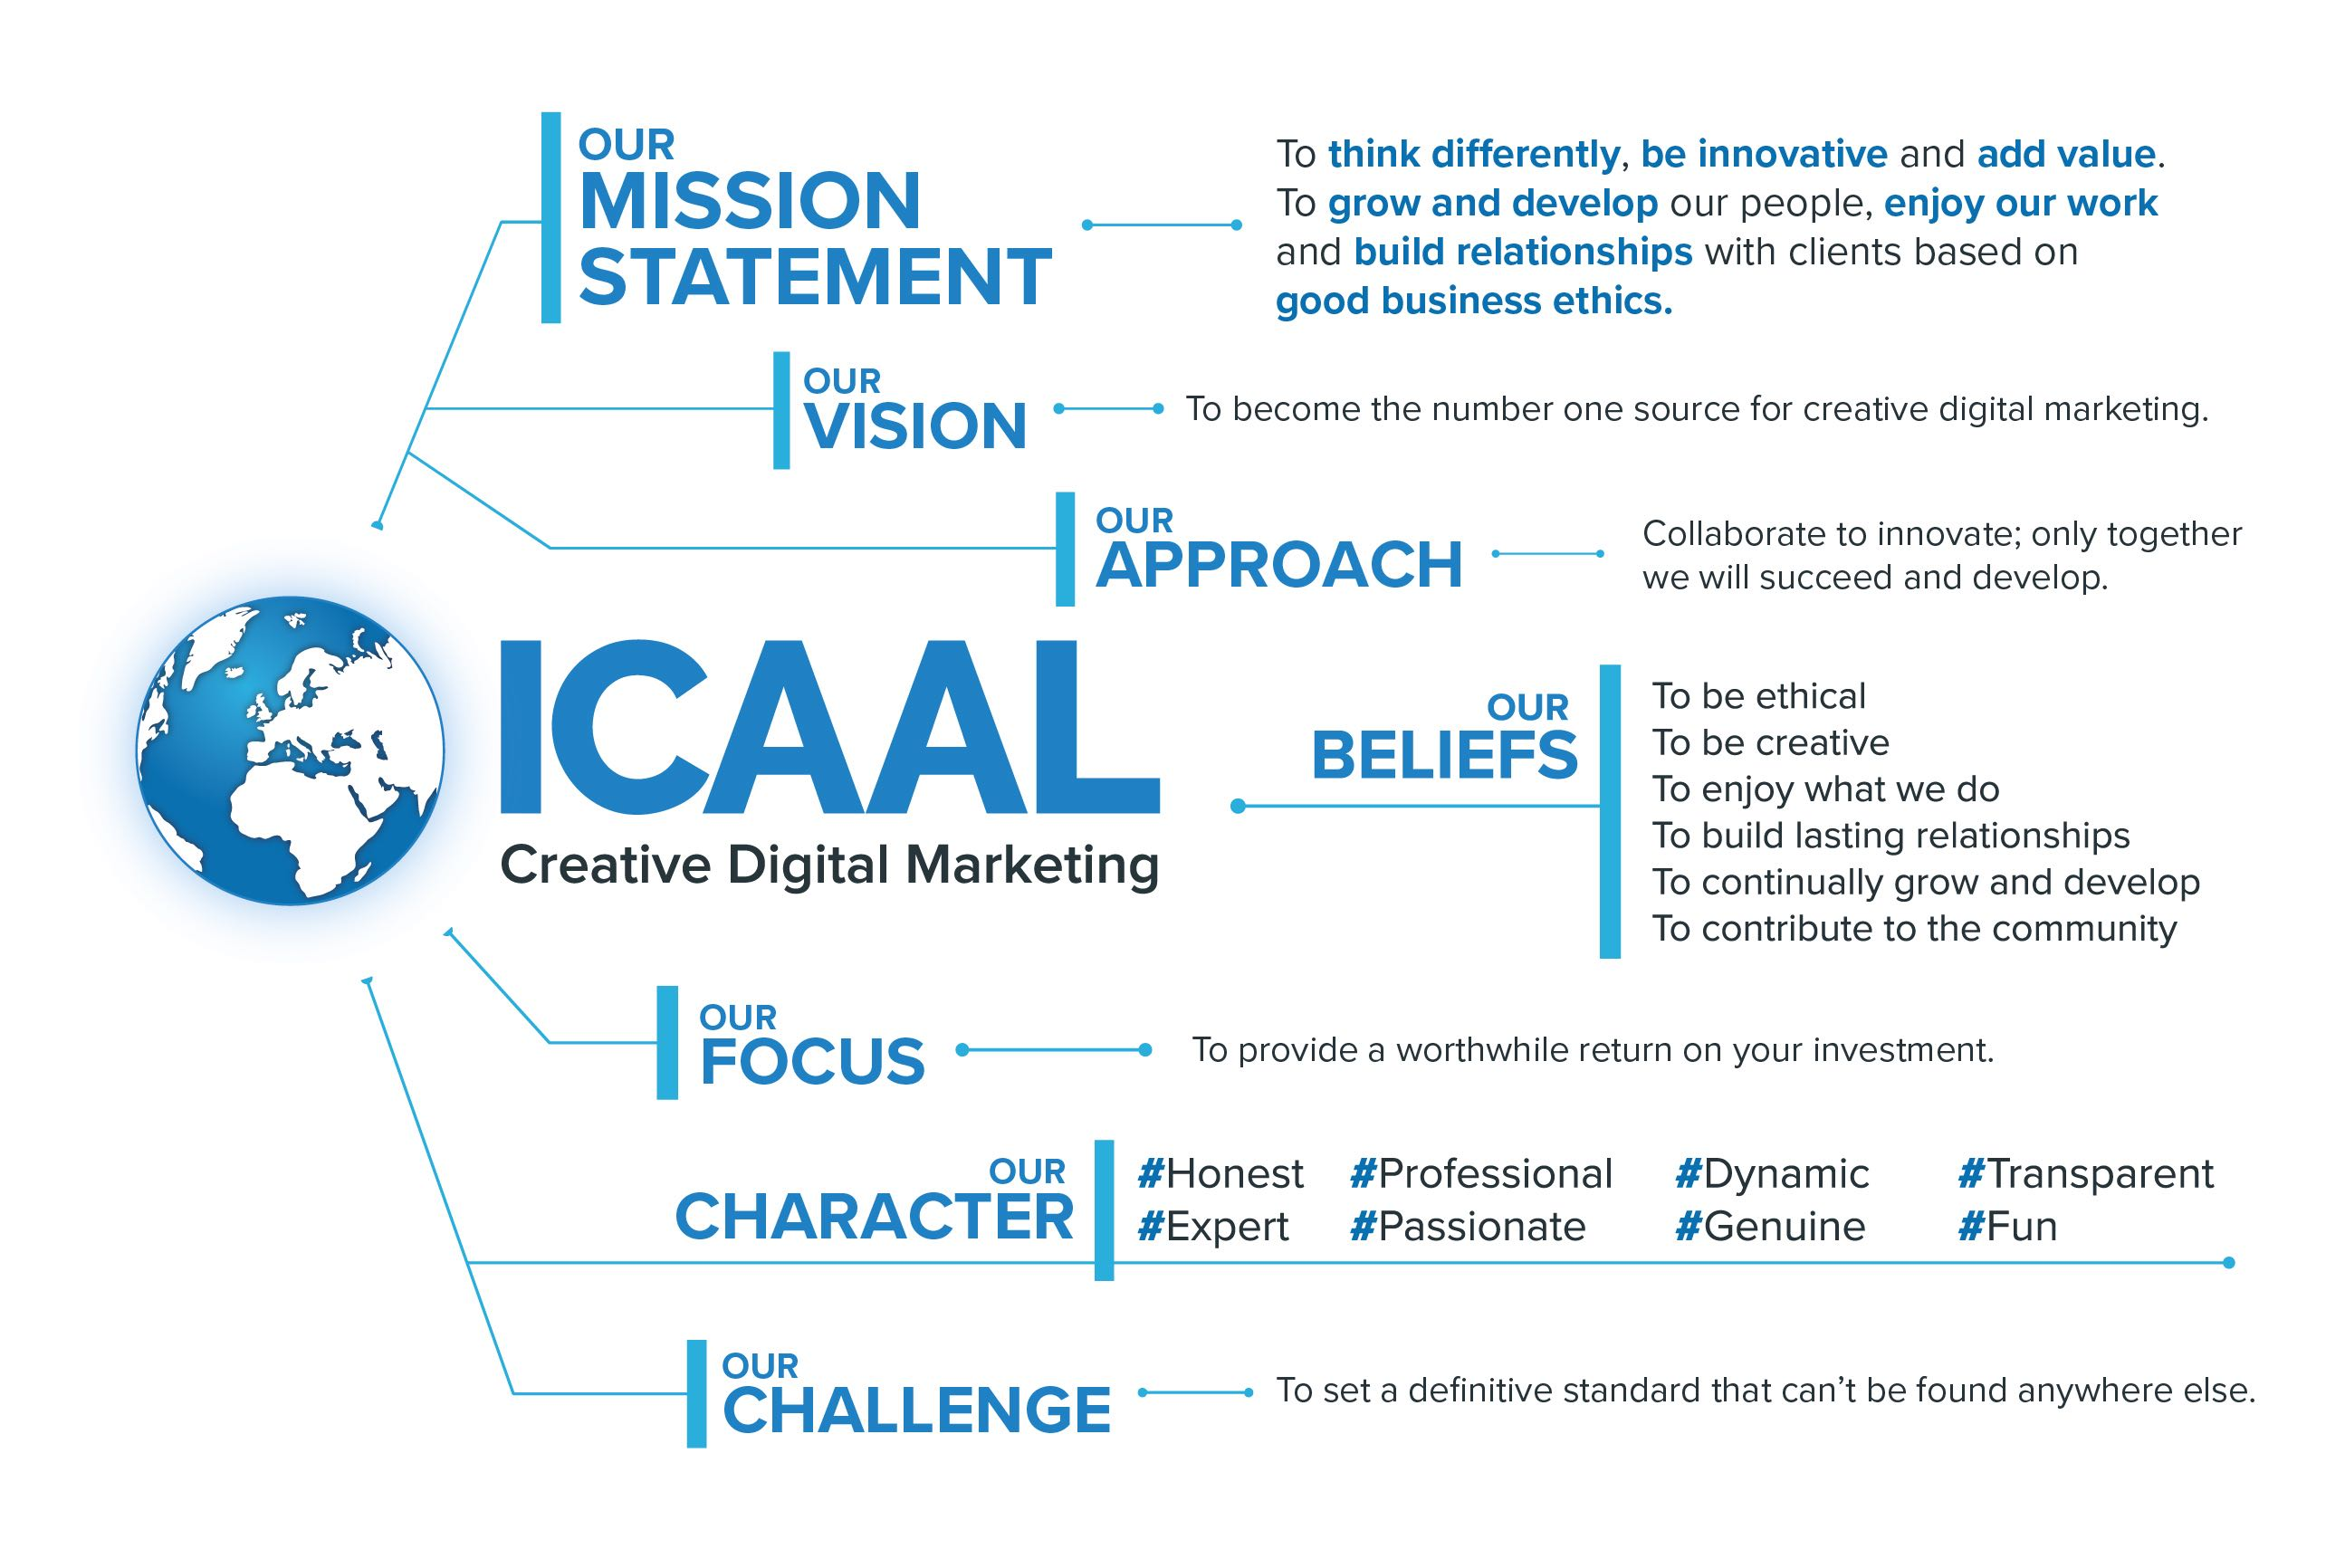 ICAAL's Mission Statement